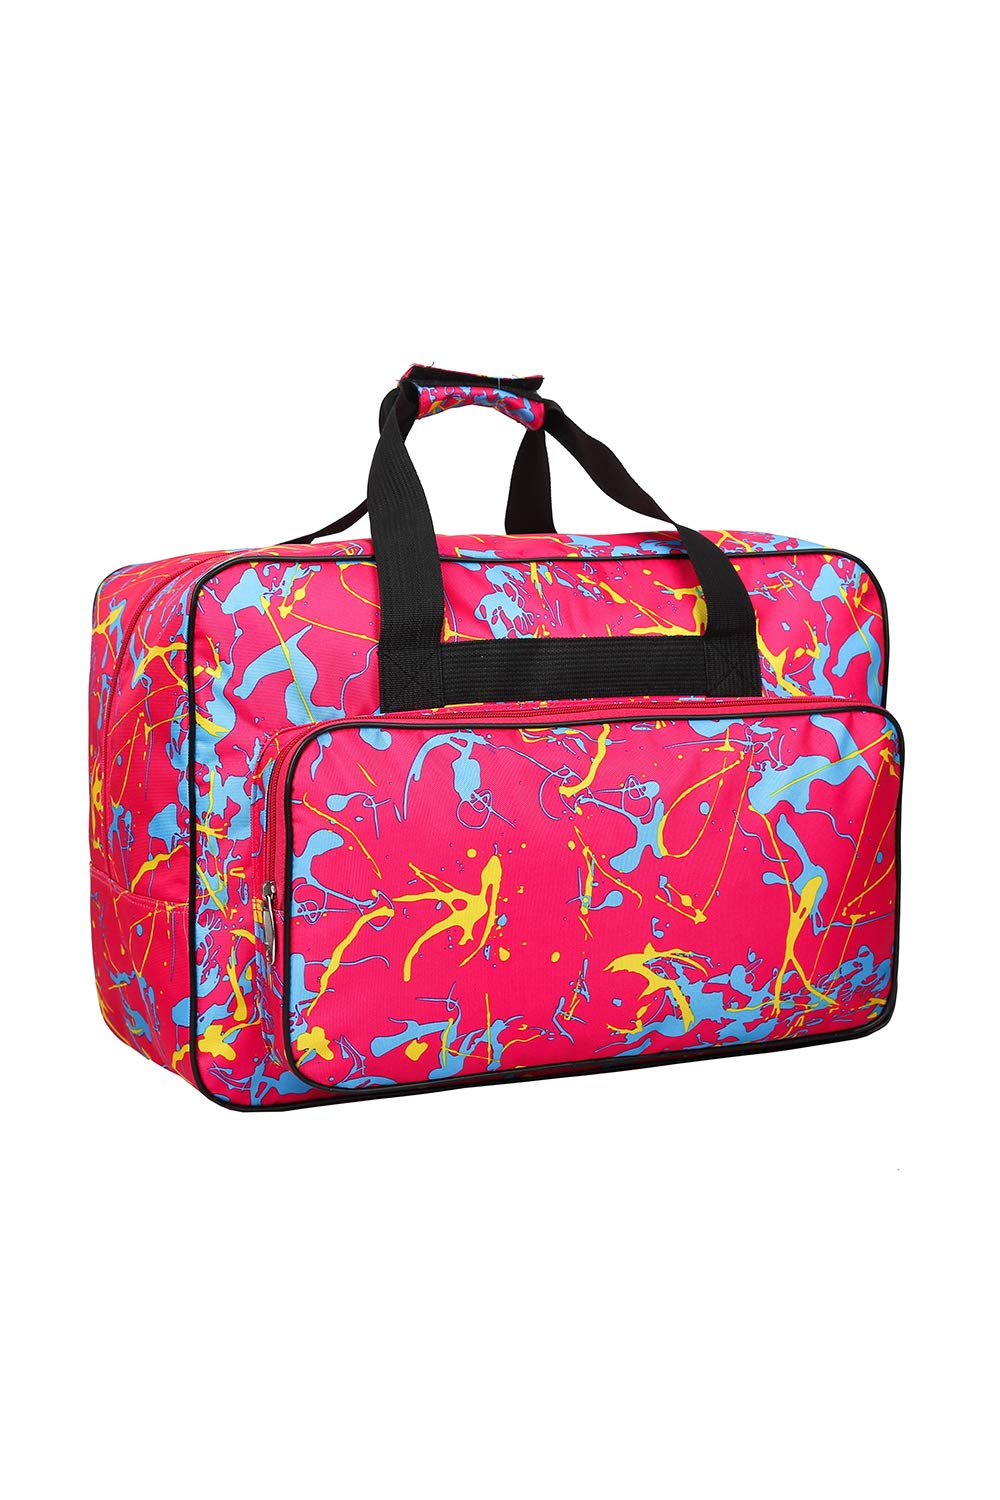 Rose Red Sewing Machine Carrying Case Tote Bag,Padded Storage Cover Carrying Case with Pockets and Handles ,Canvas